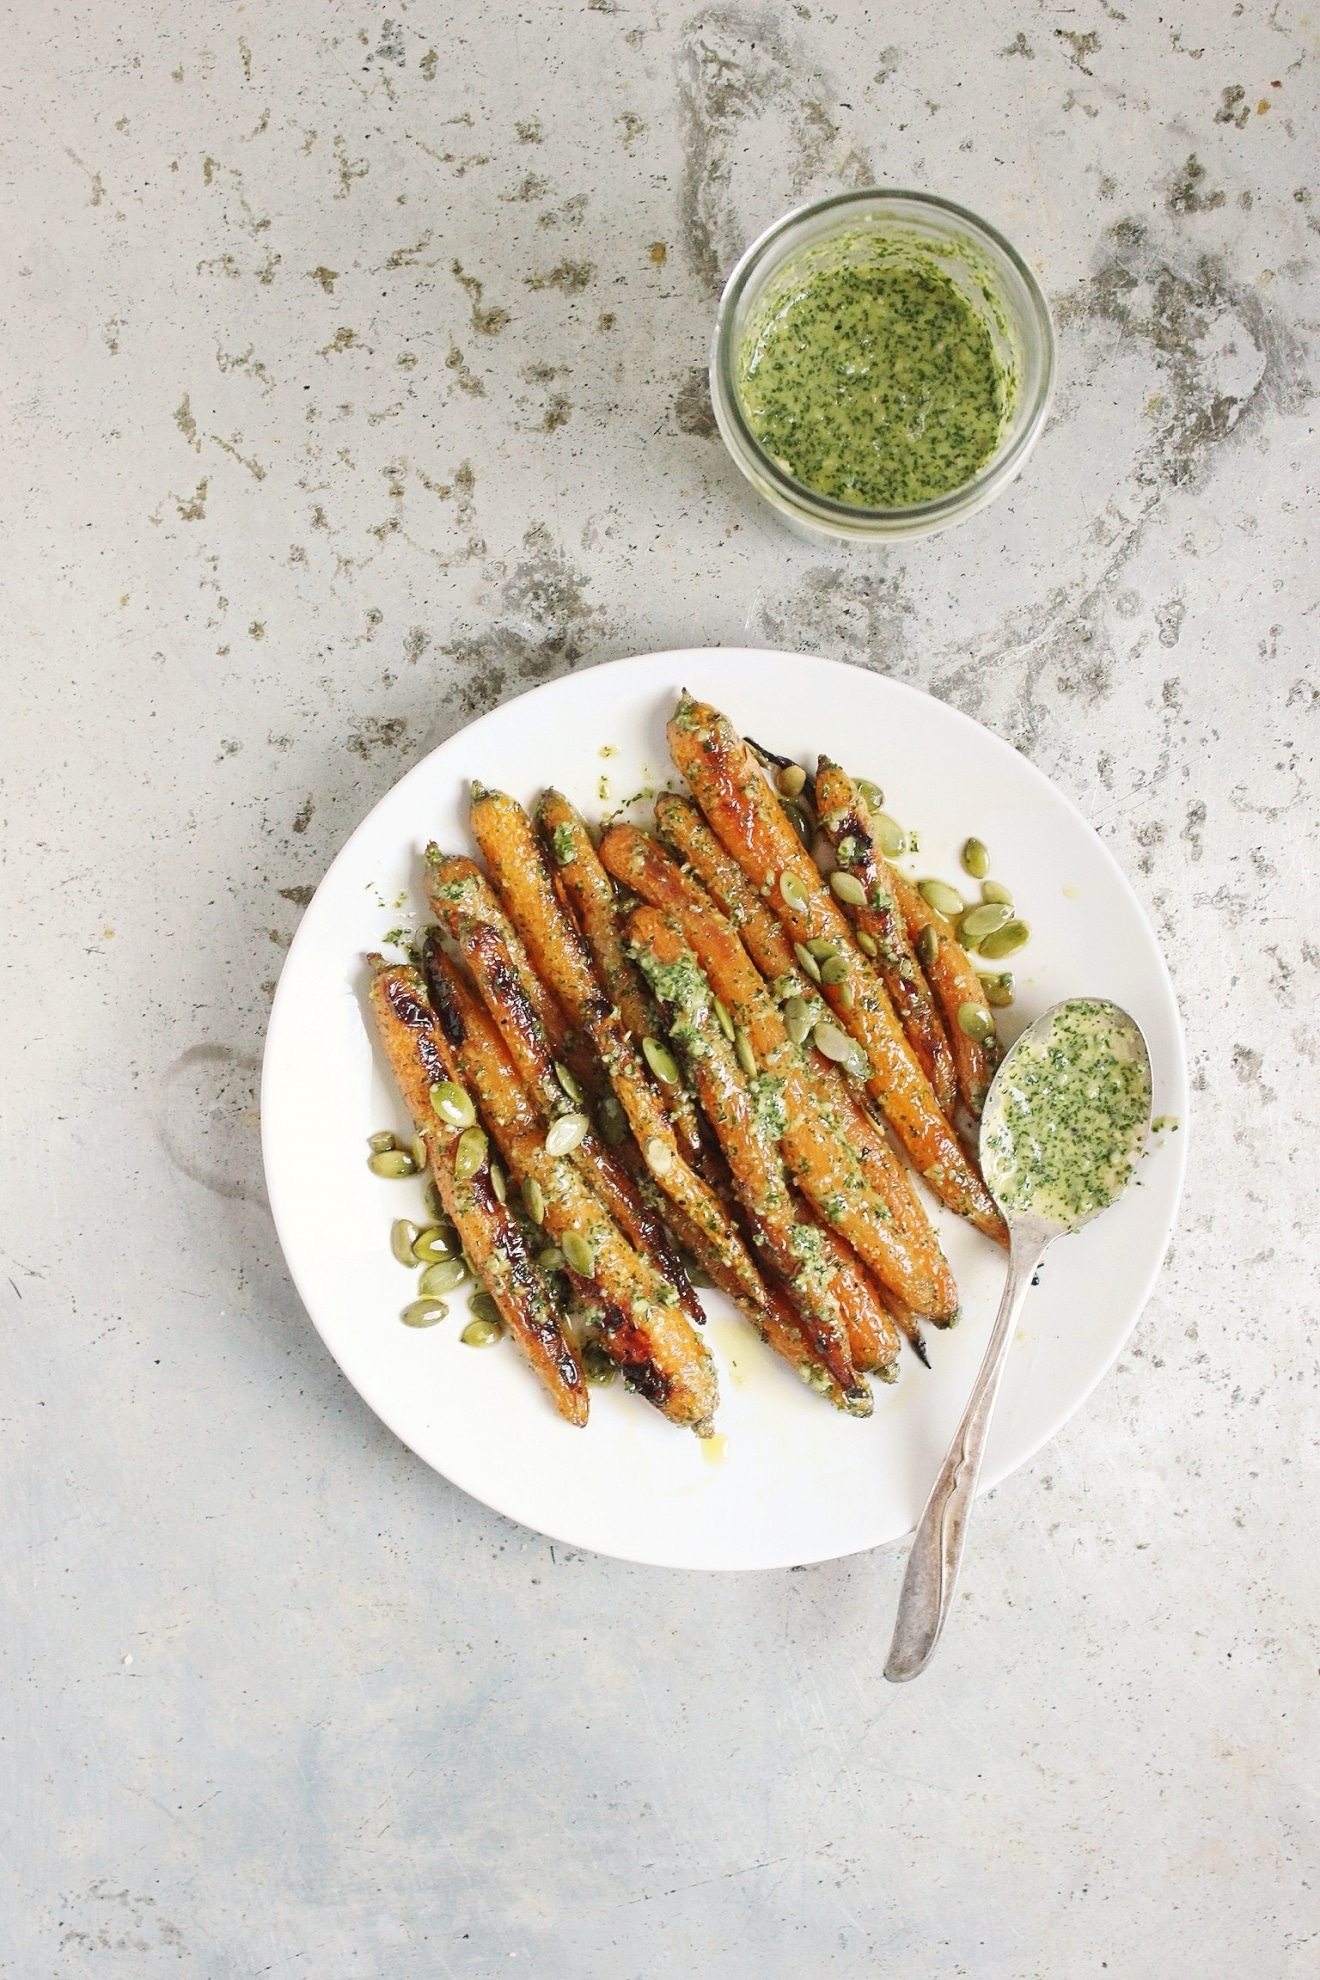 Roasted Spring Carrots with Lemony Dill Pesto